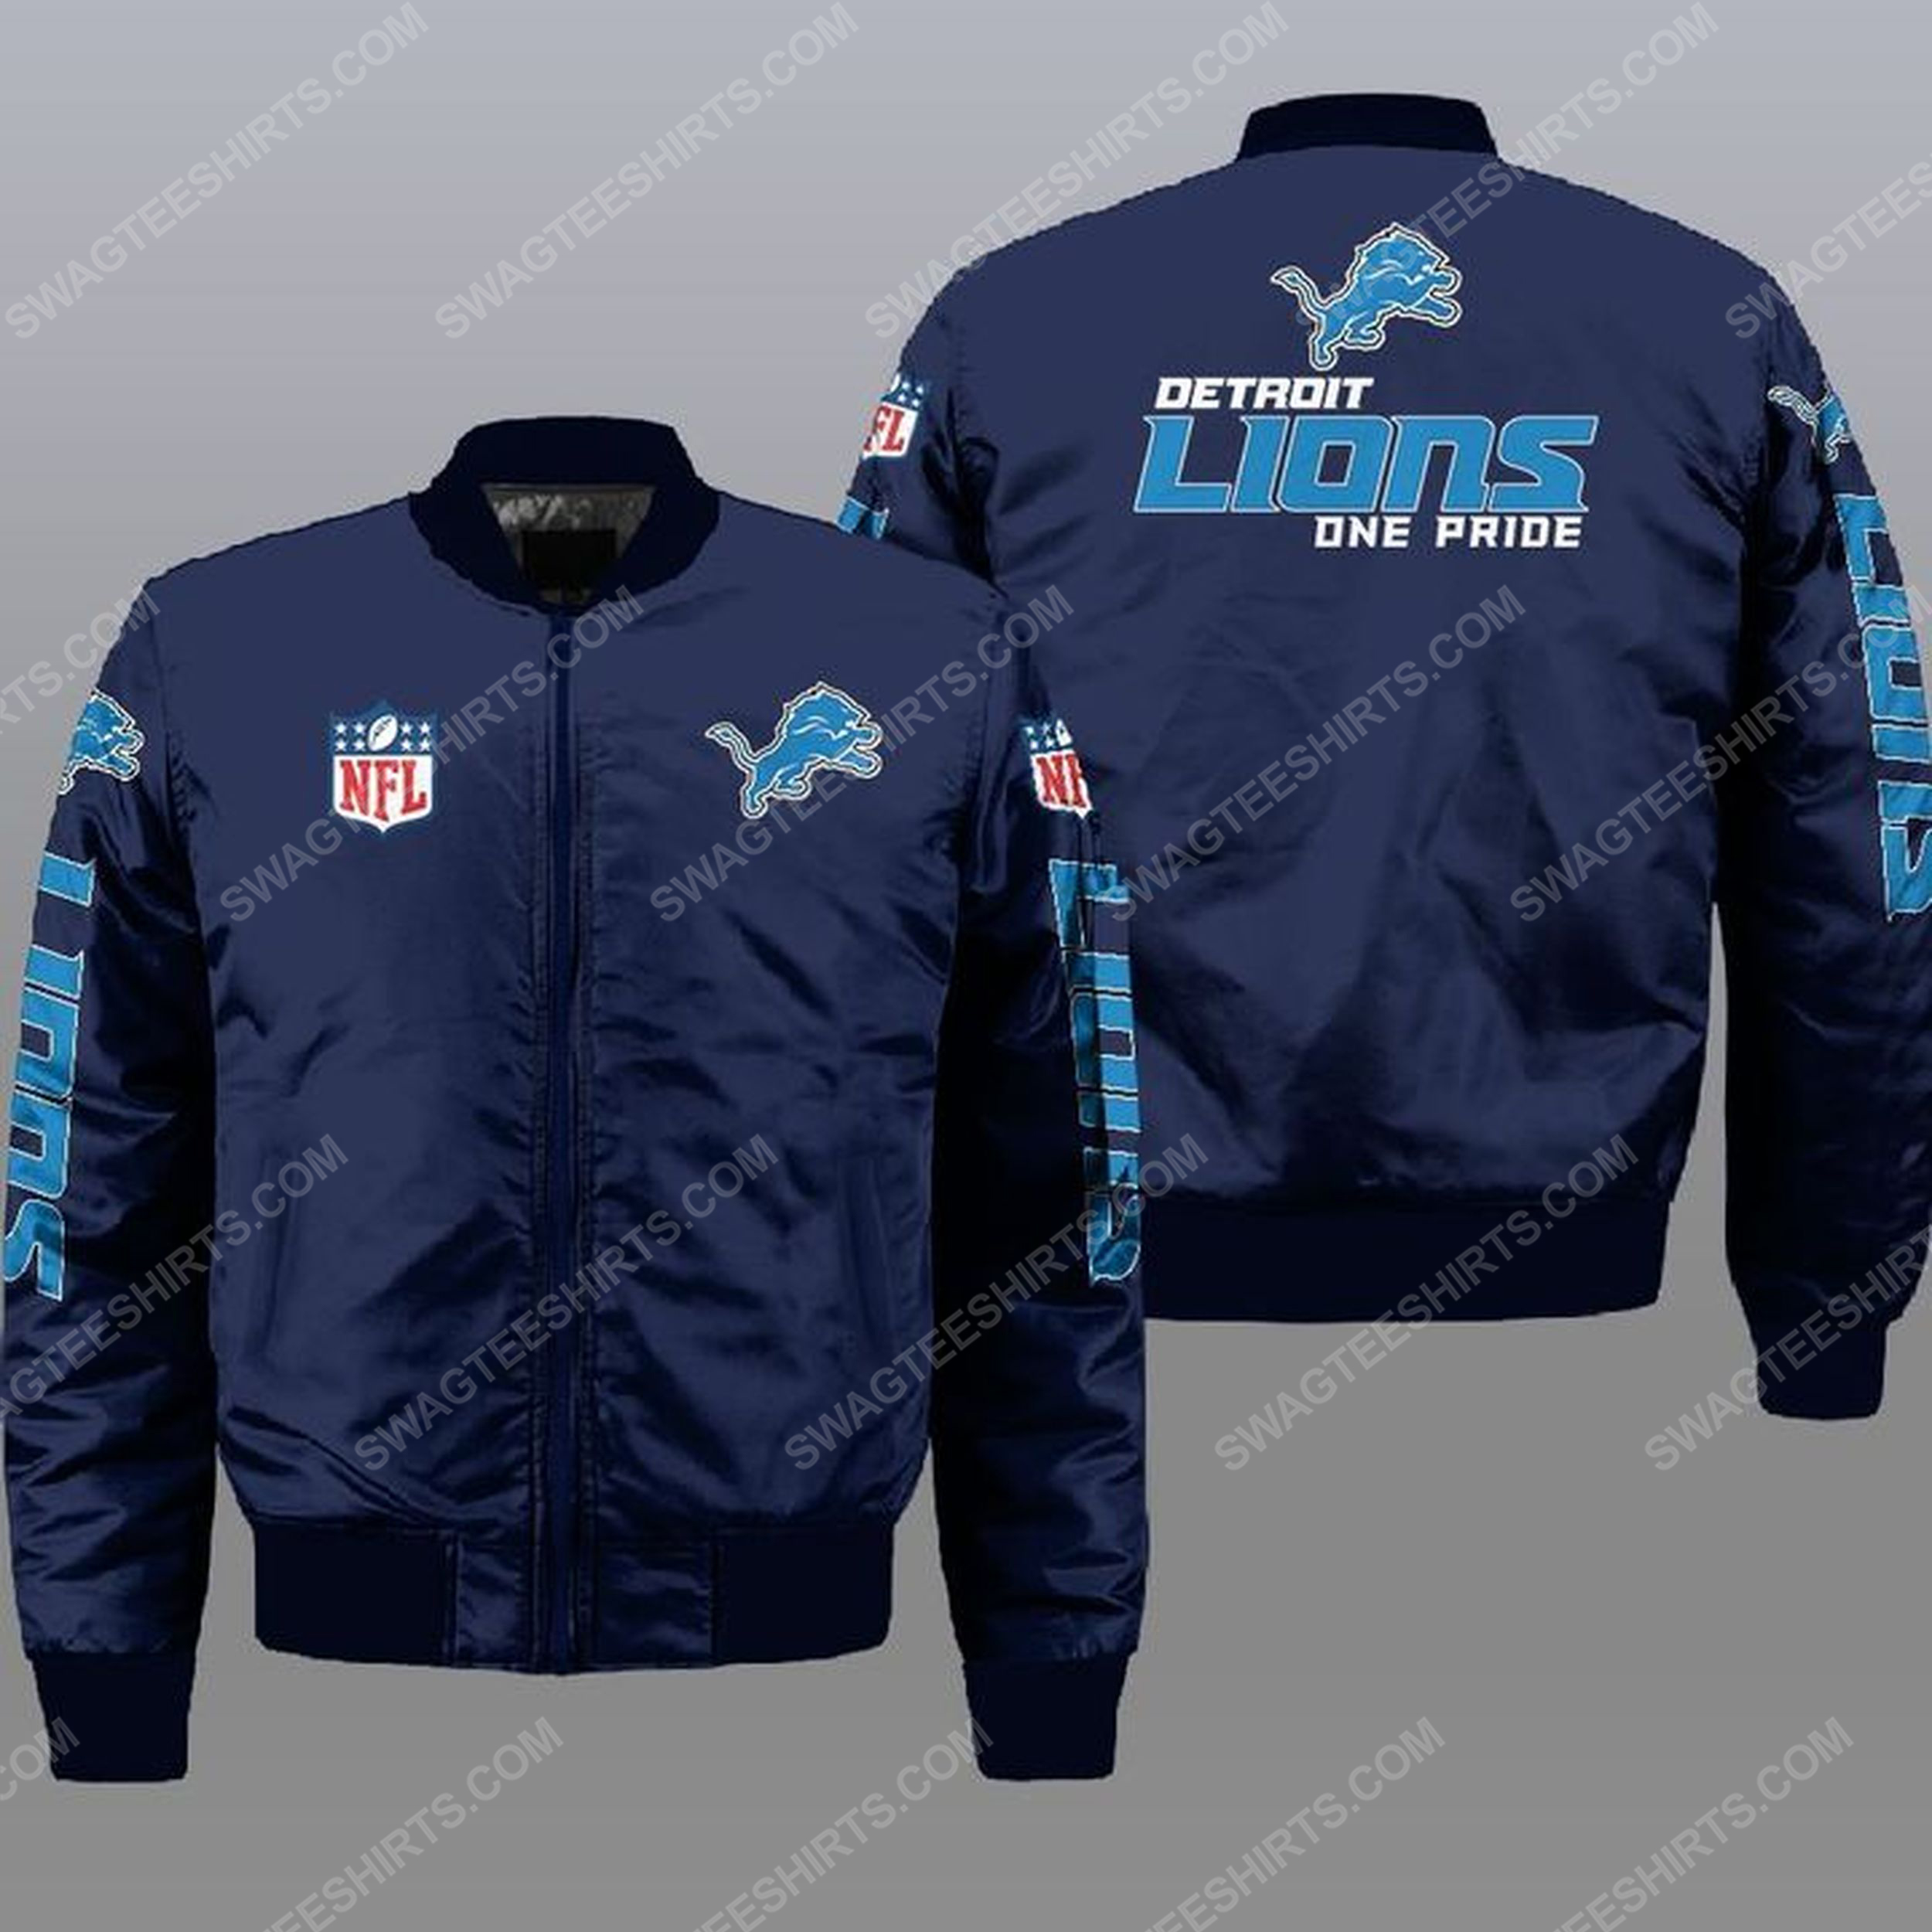 Detroit lions one pride all over print bomber jacket -navy 1